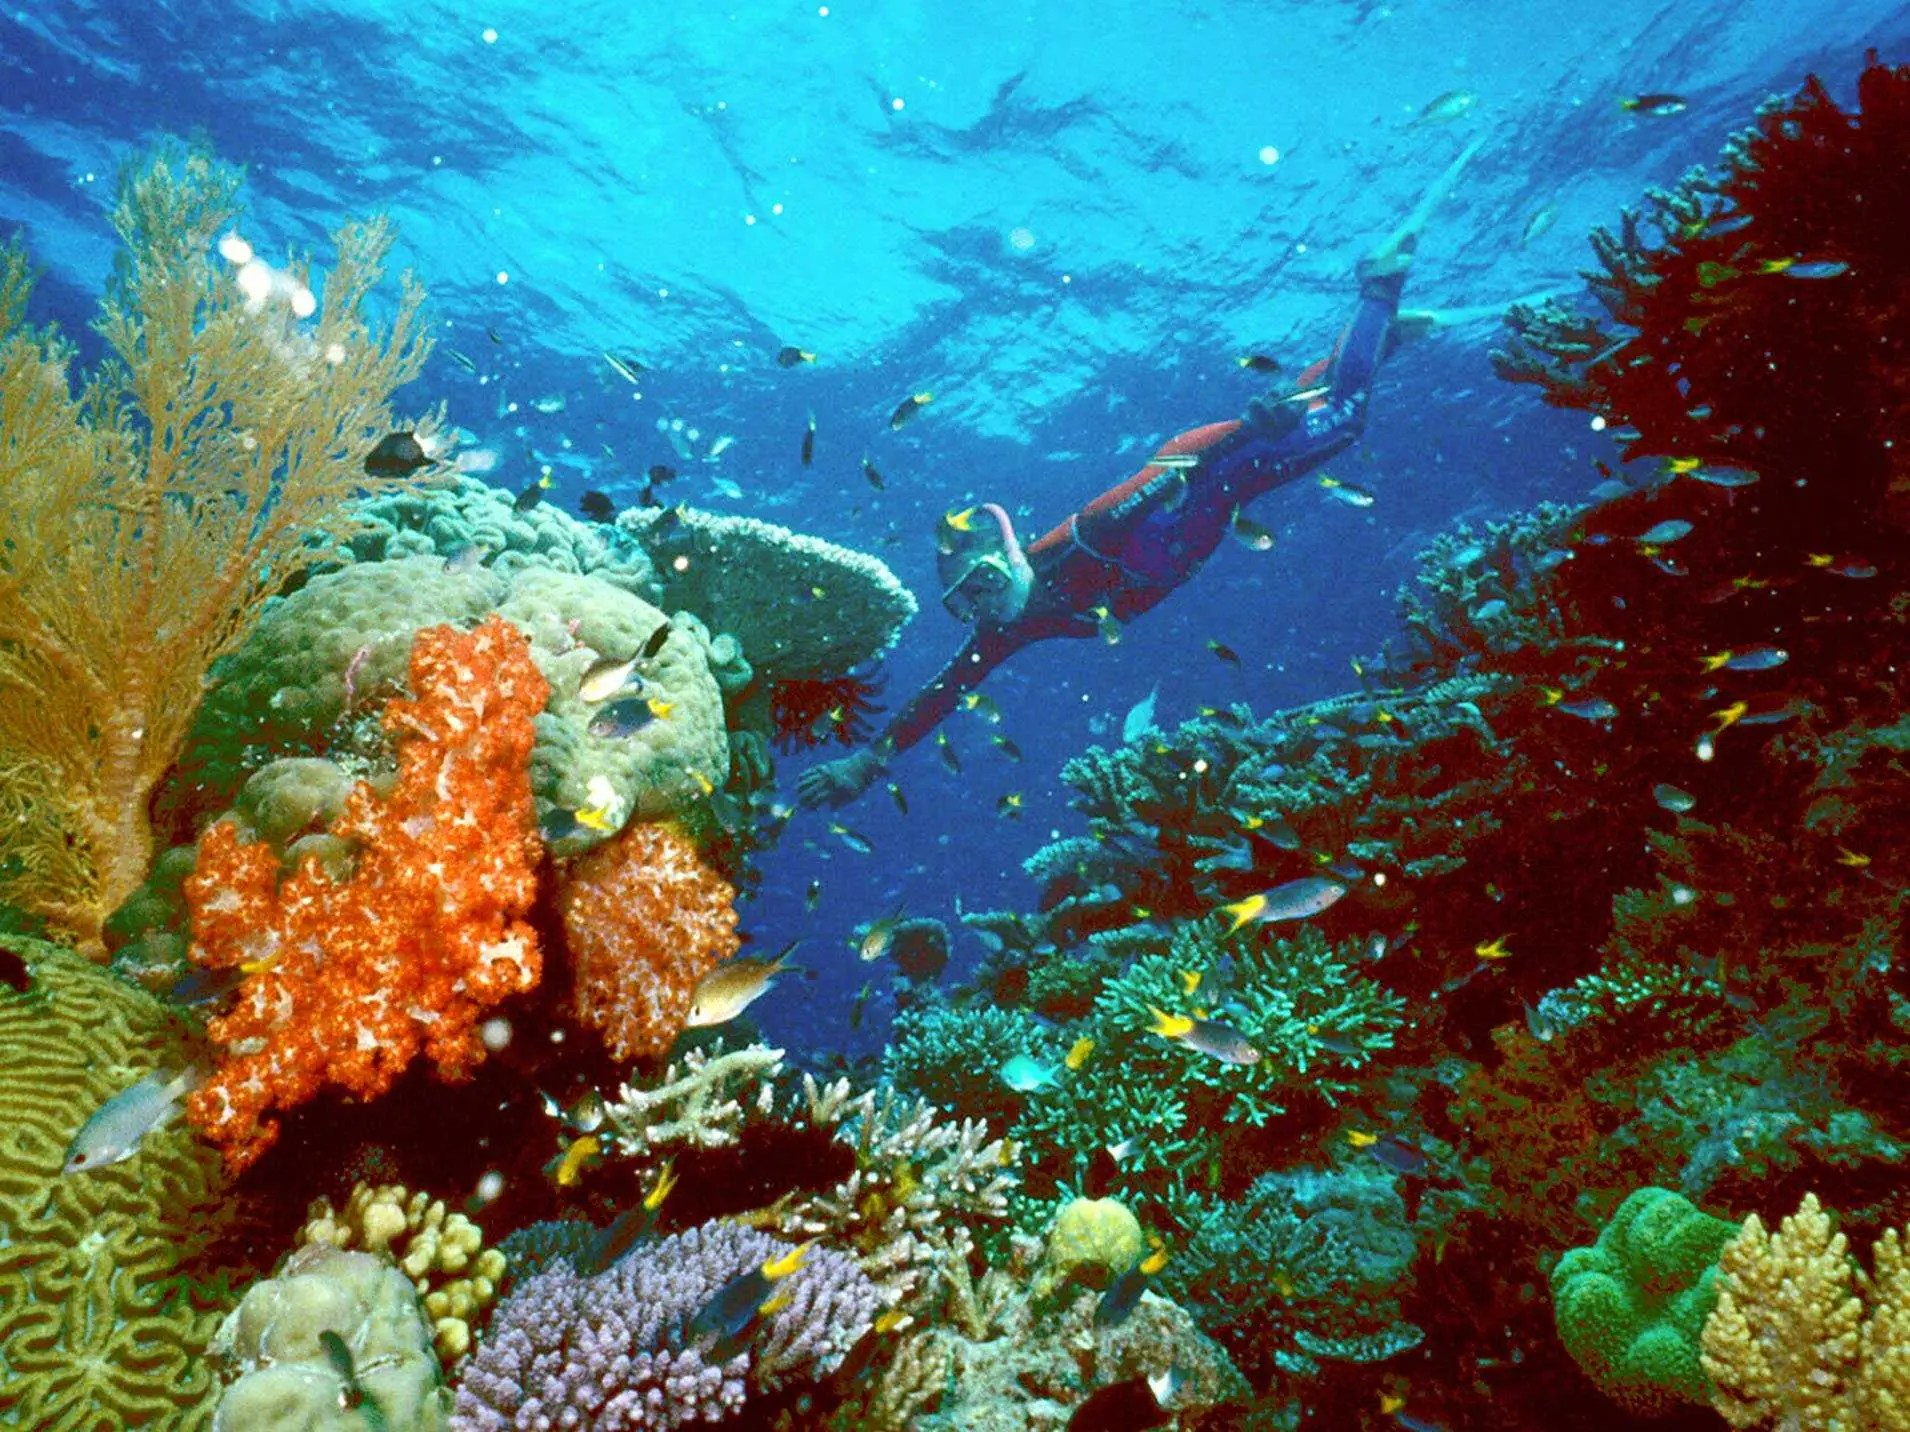 Dive into the clear blue waters of Australia's Coral Sea to see the spectacular Great Barrier Reef.